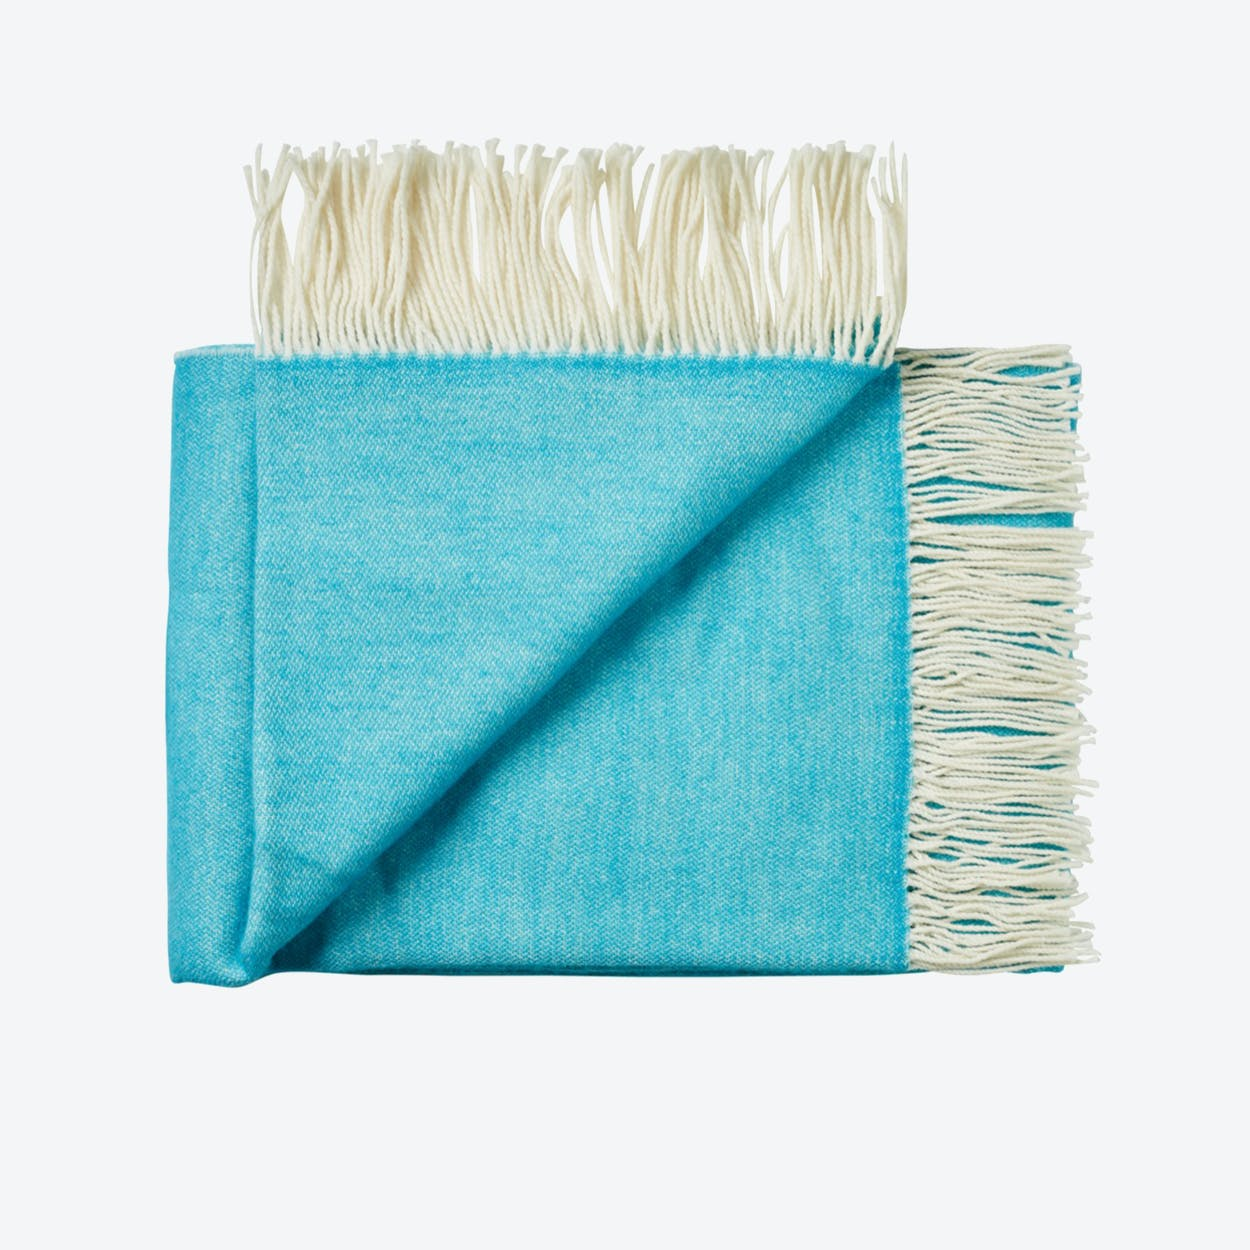 Porto Wool Throw in Turquoise